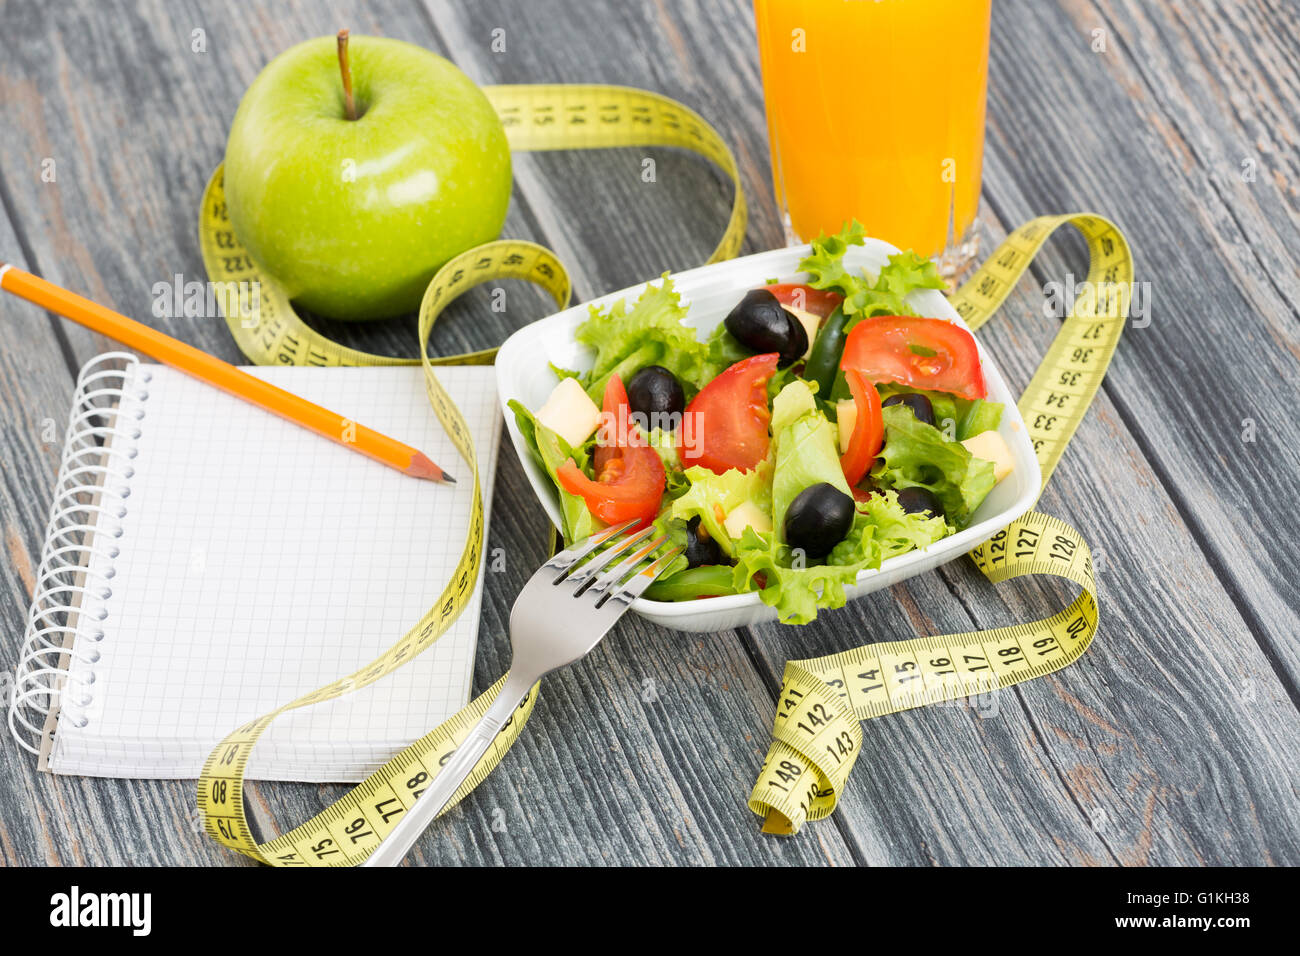 Workout and fitness dieting copy space diary on wooden table. - Stock Image